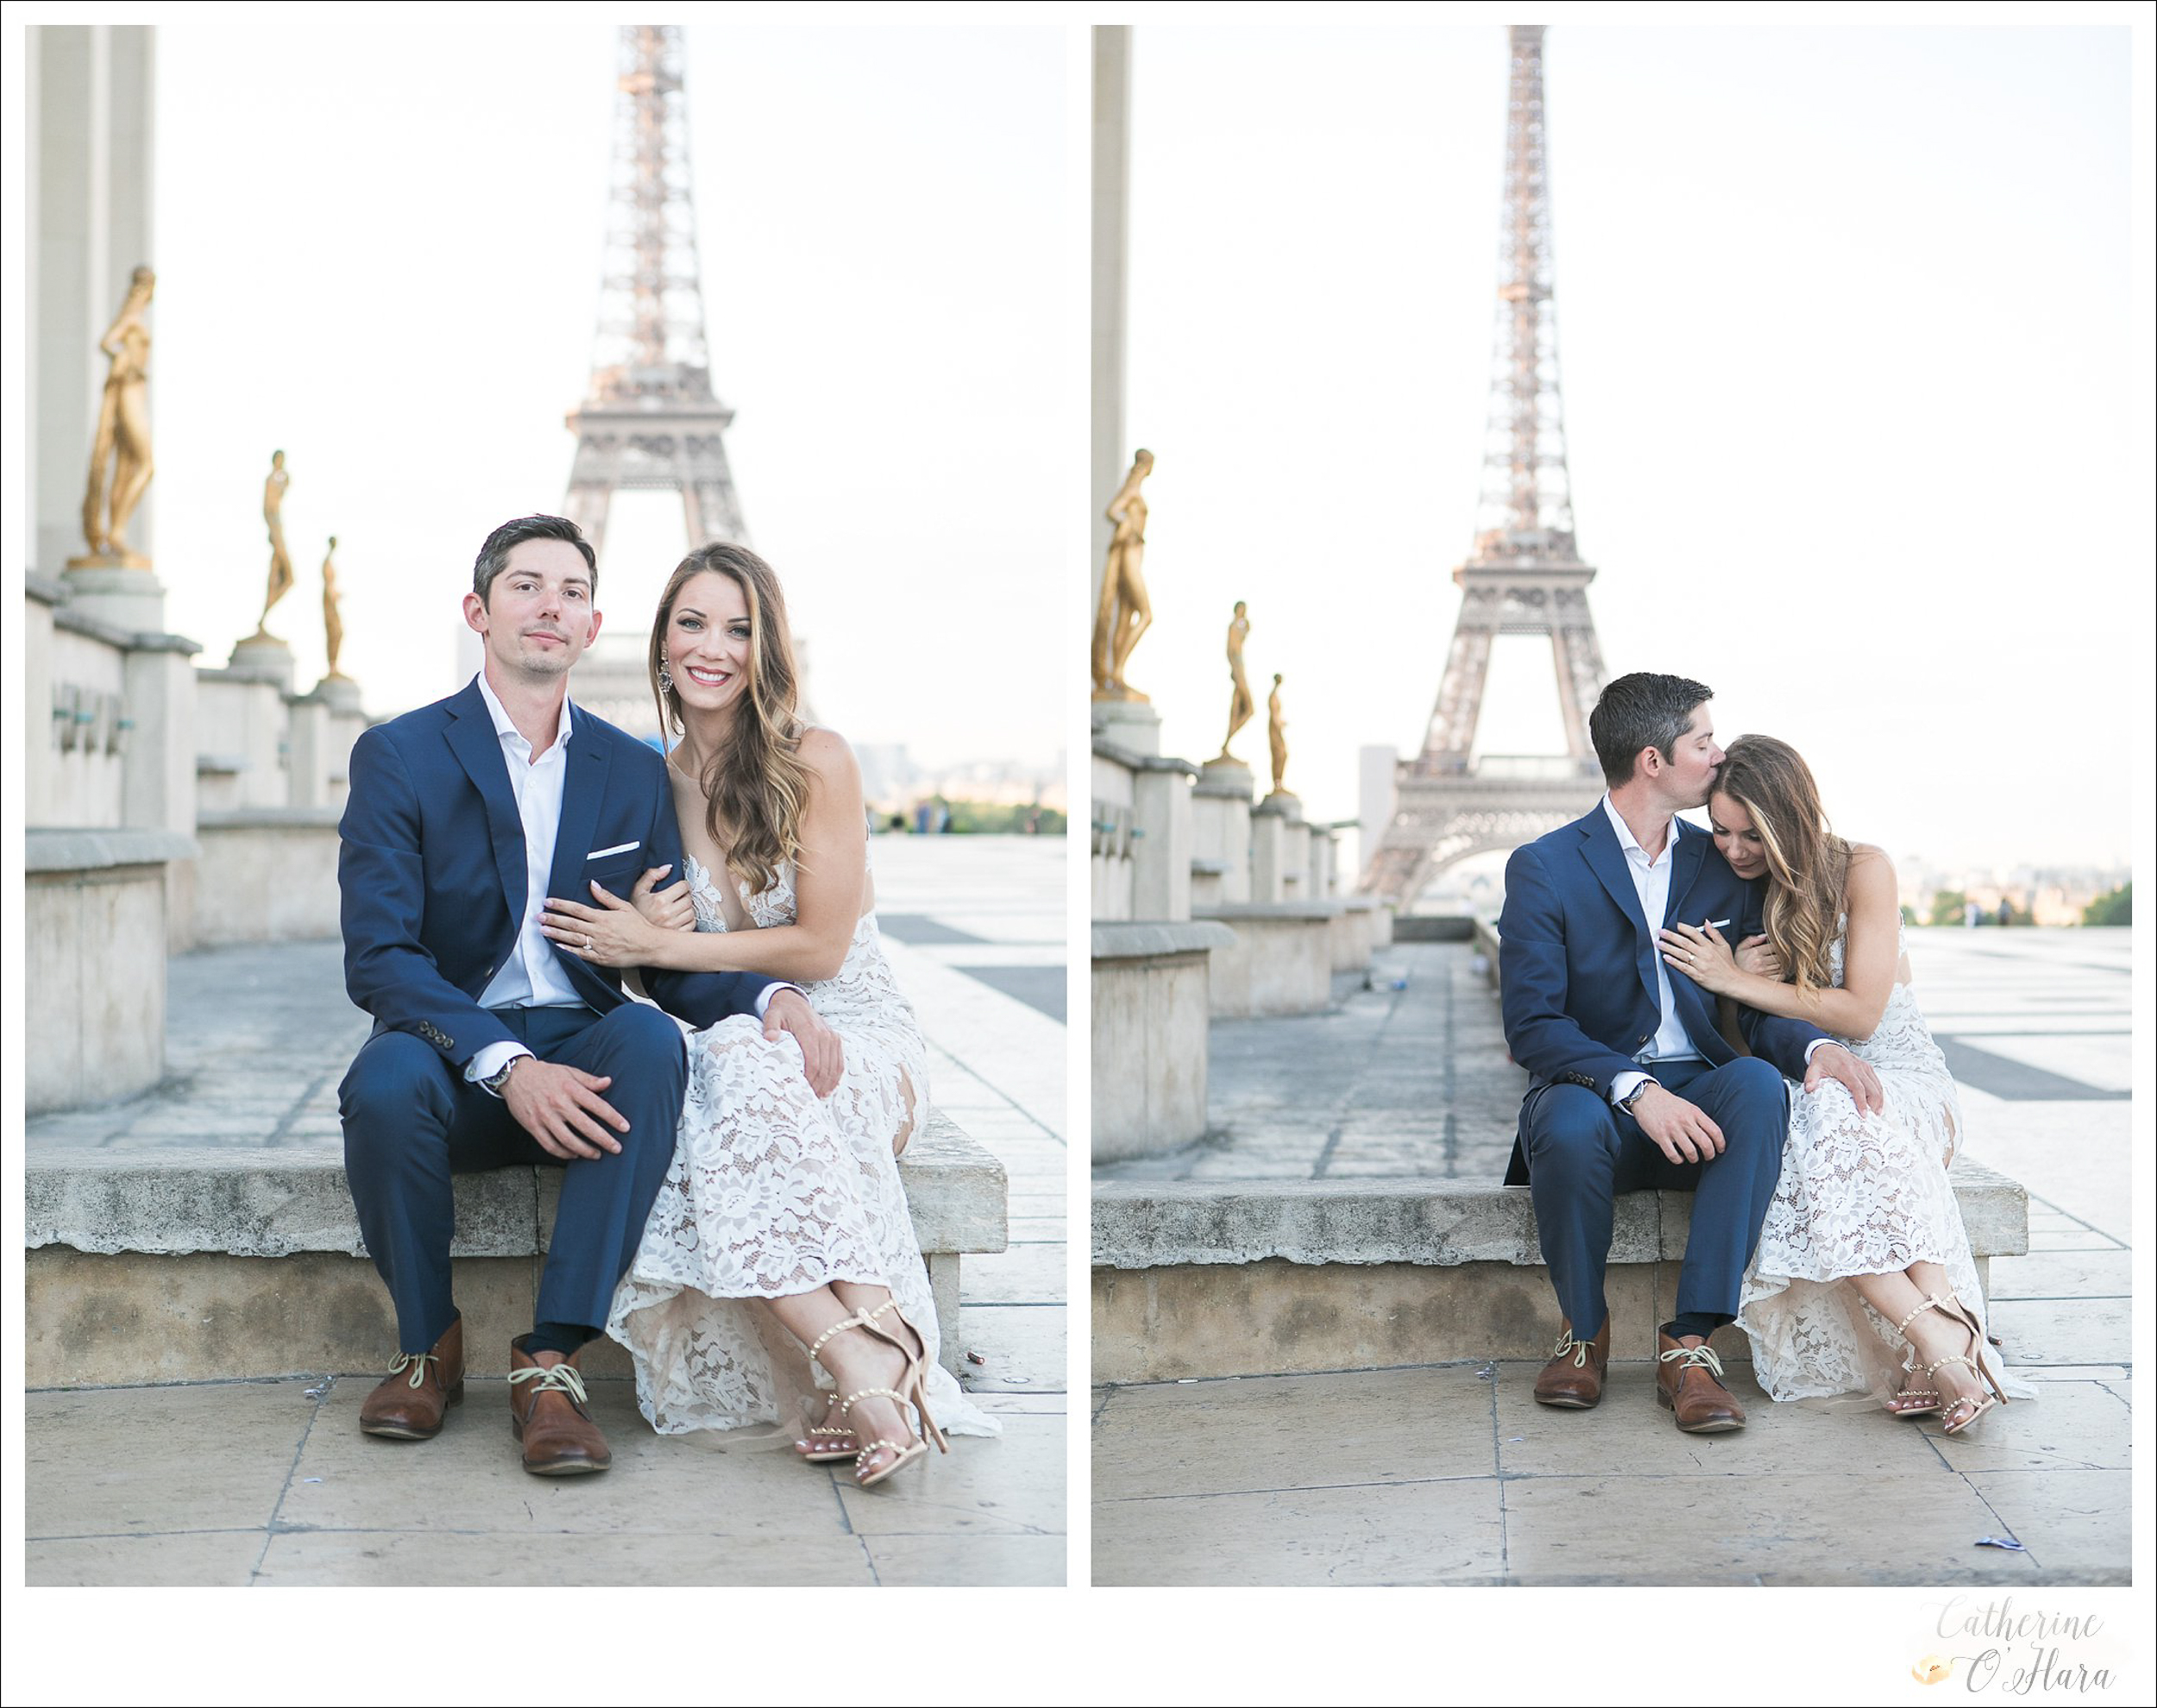 paris france engagement proposal photographer-15.jpg